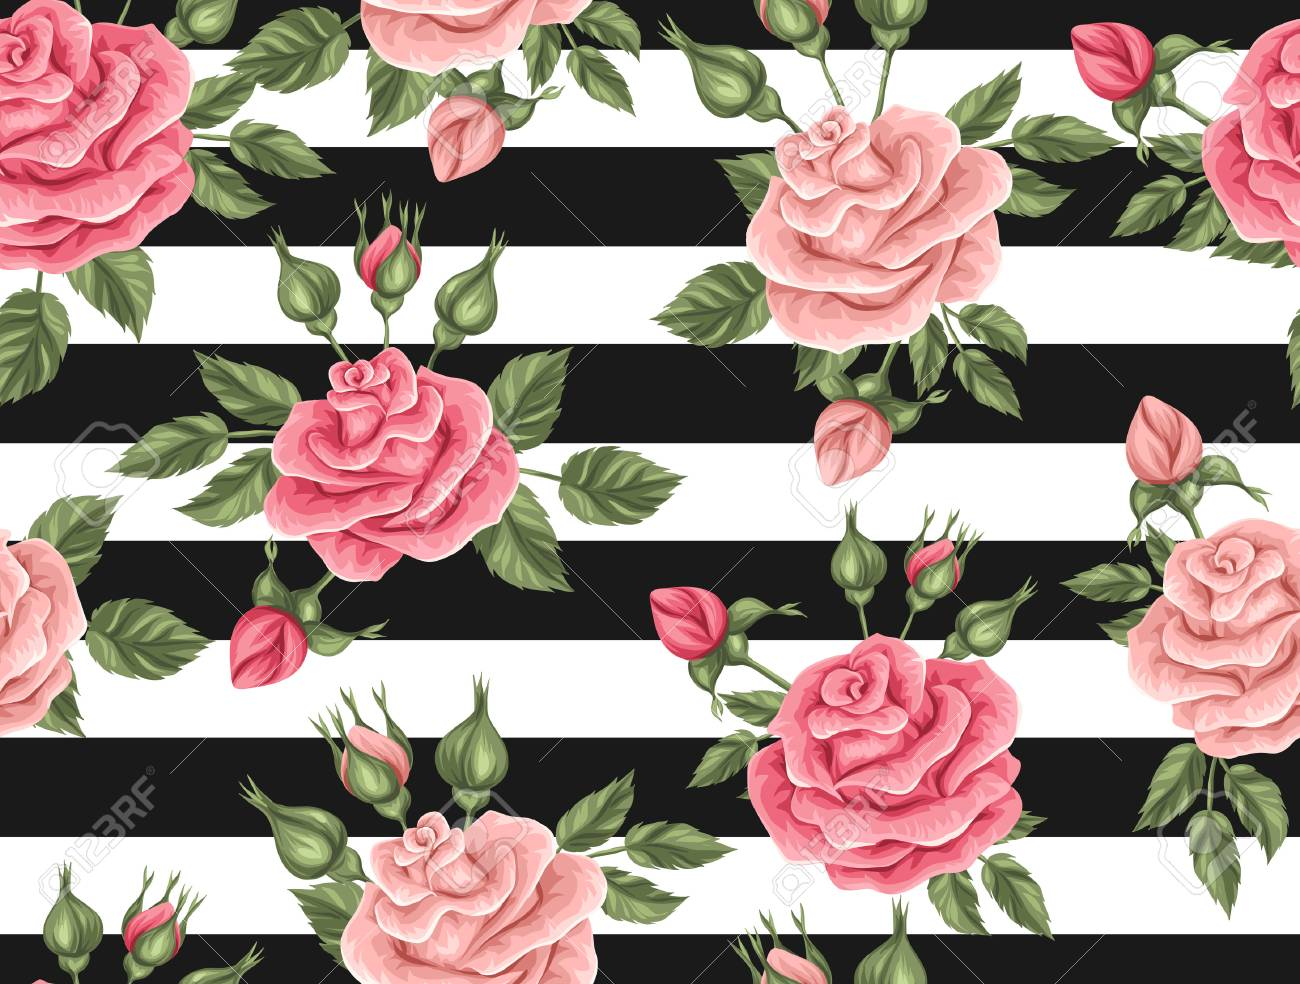 Seamless Pattern With Vintage Roses Decorative Retro Flowers Royalty Free Cliparts Vectors And Stock Illustration Image 58135382